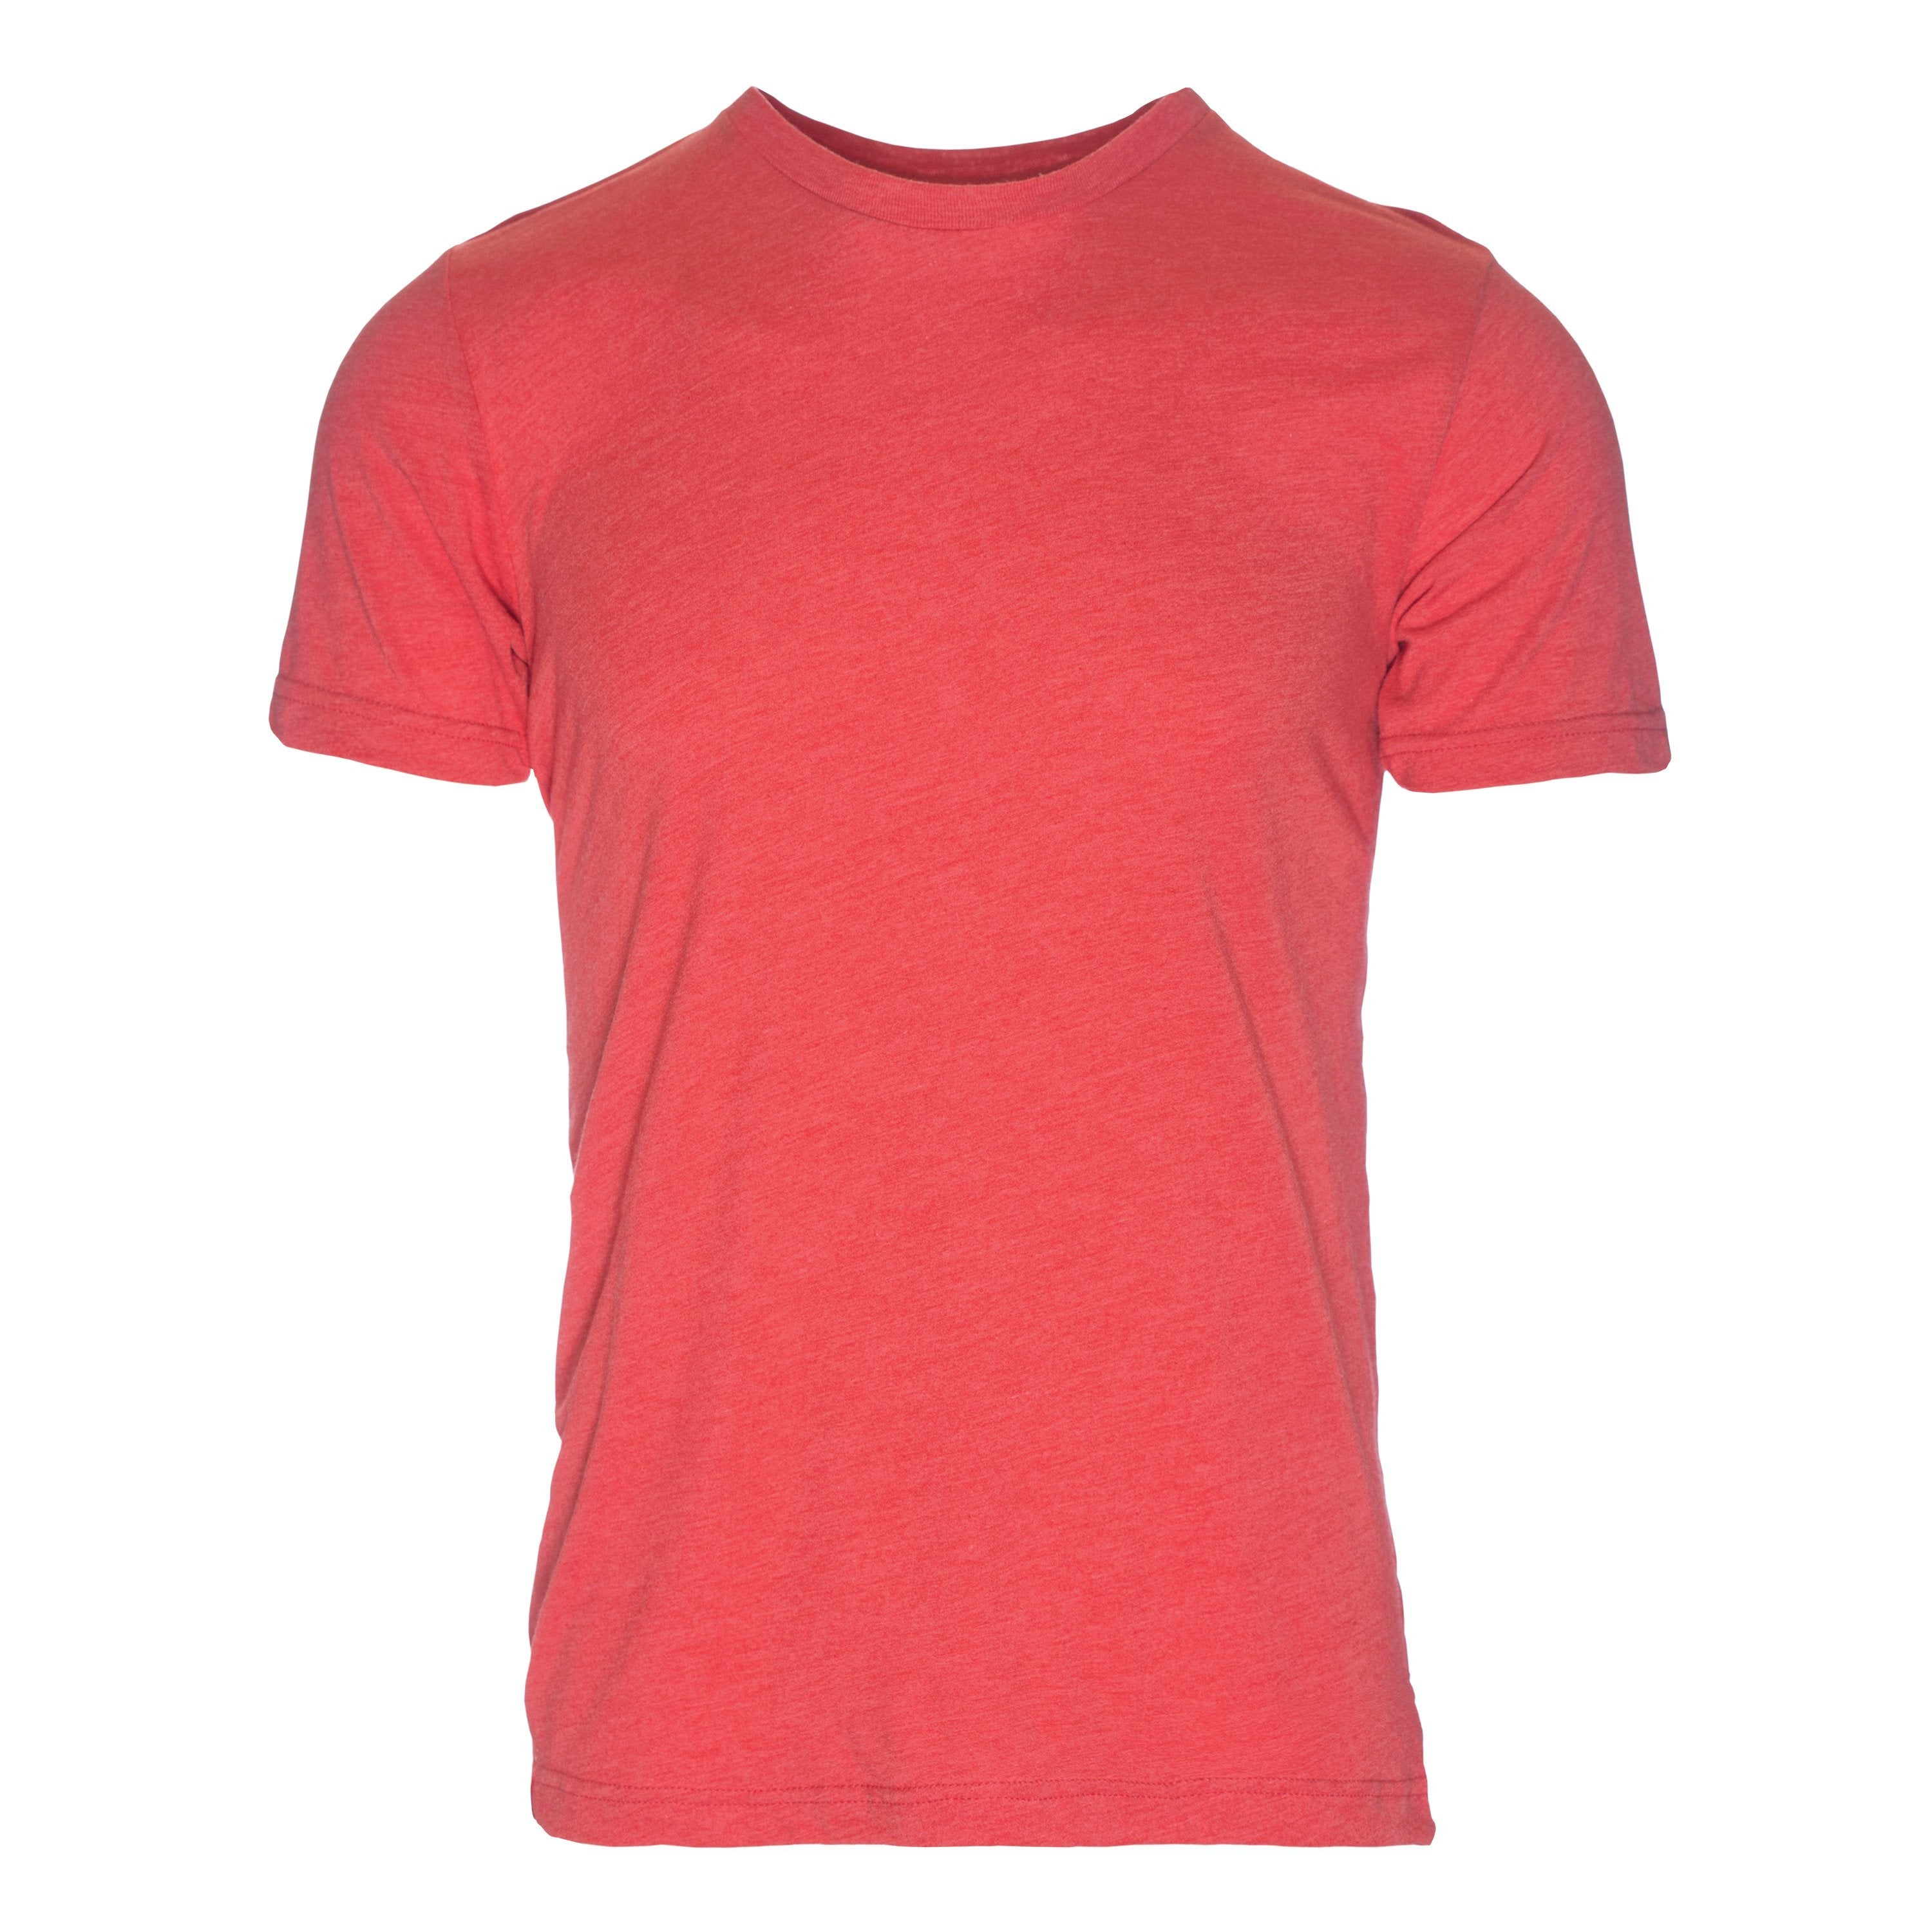 RM100RD Eco REPREVE® Recycled Triblend Crew T-Shirt - Red